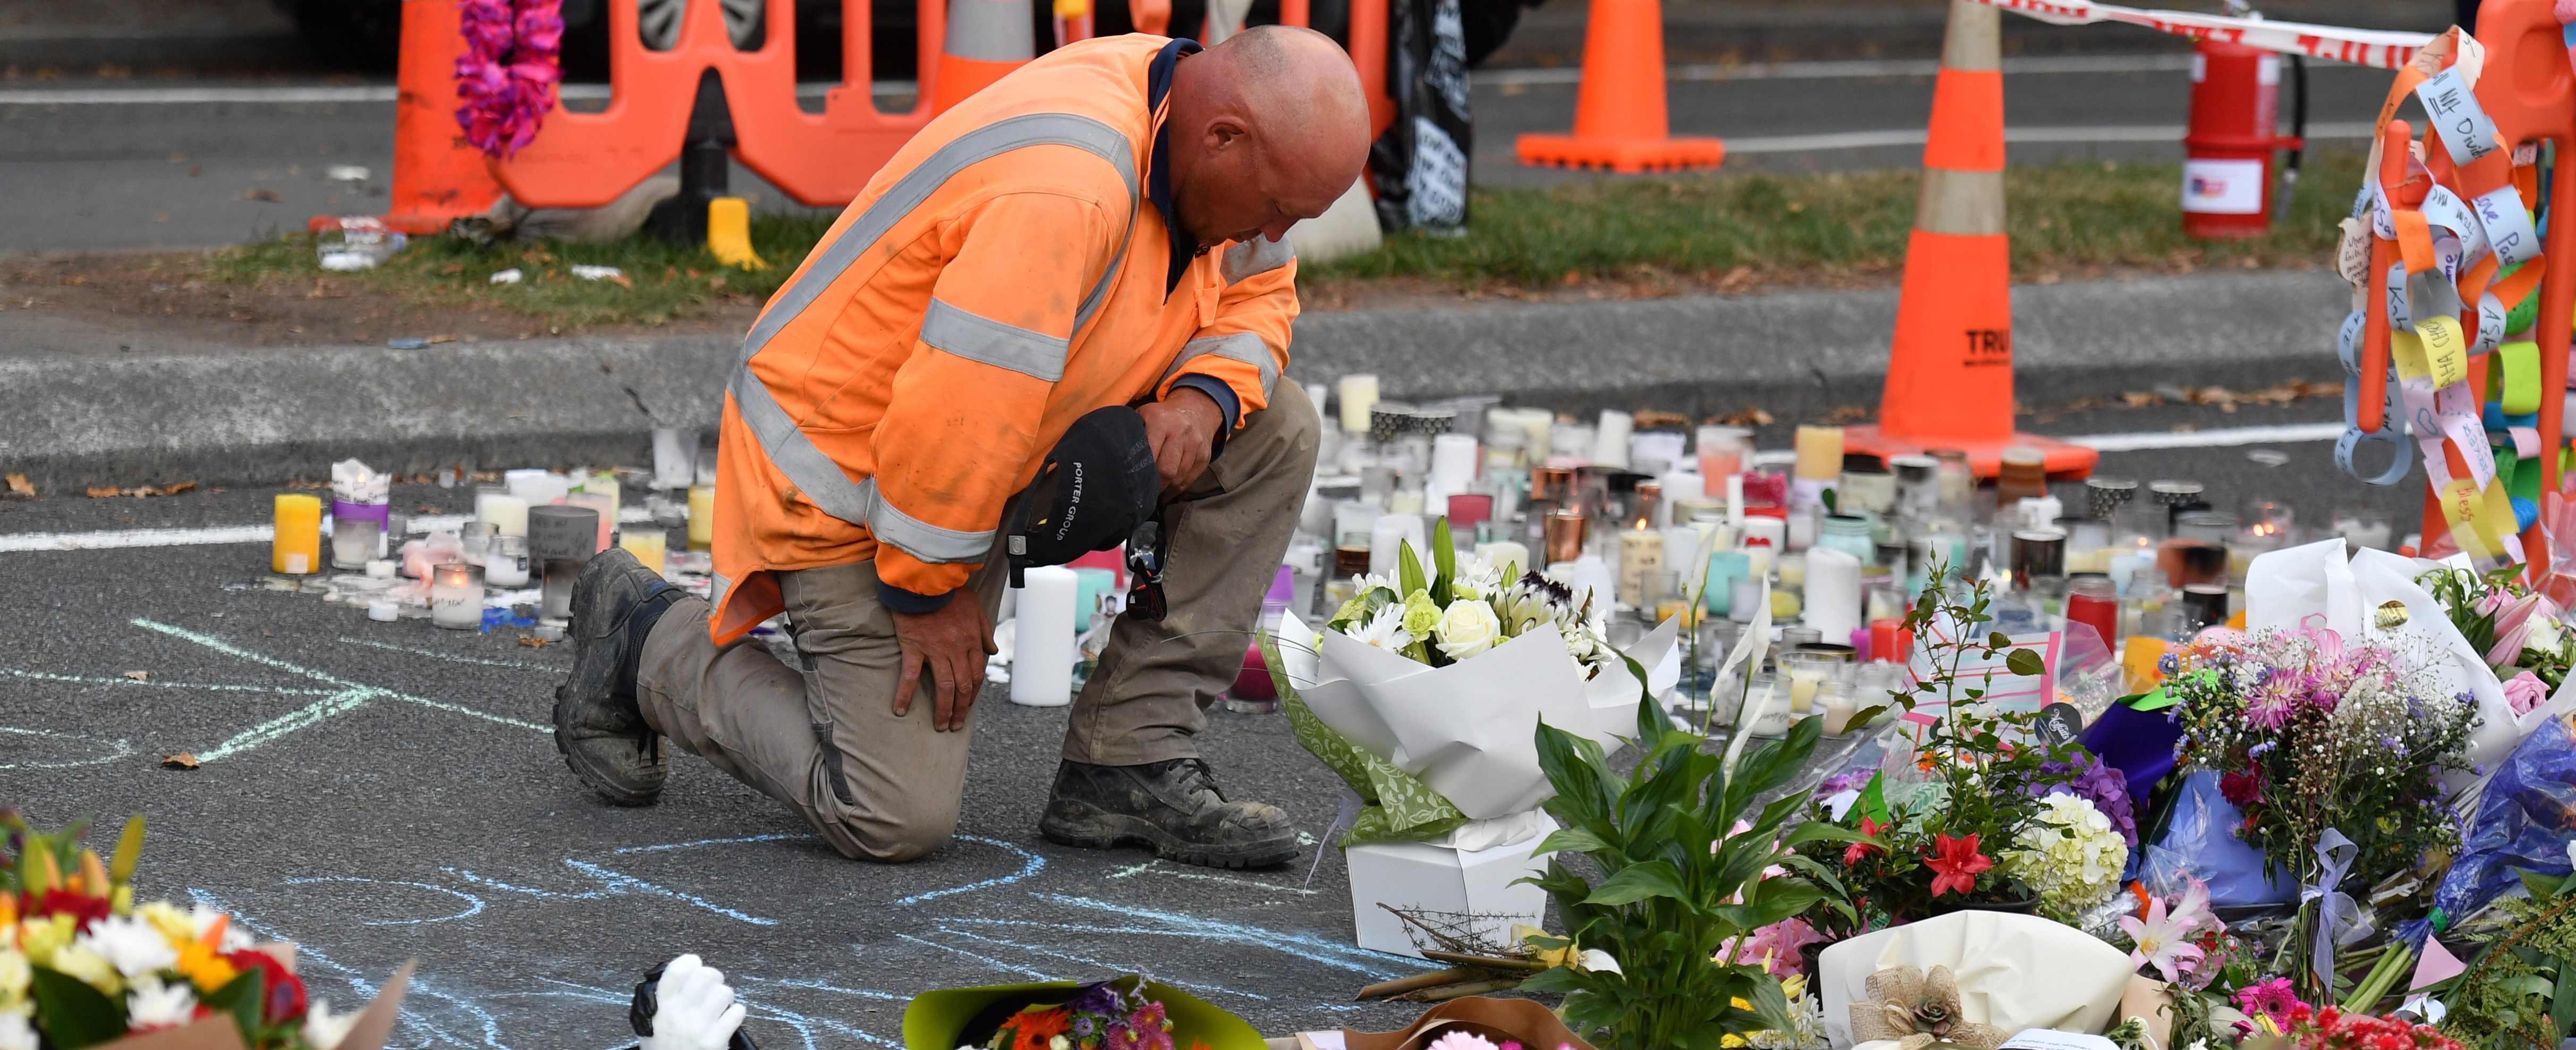 New Zealand Attack: YouTube Takes Down Tens Of Thousands Of New Zealand Attack